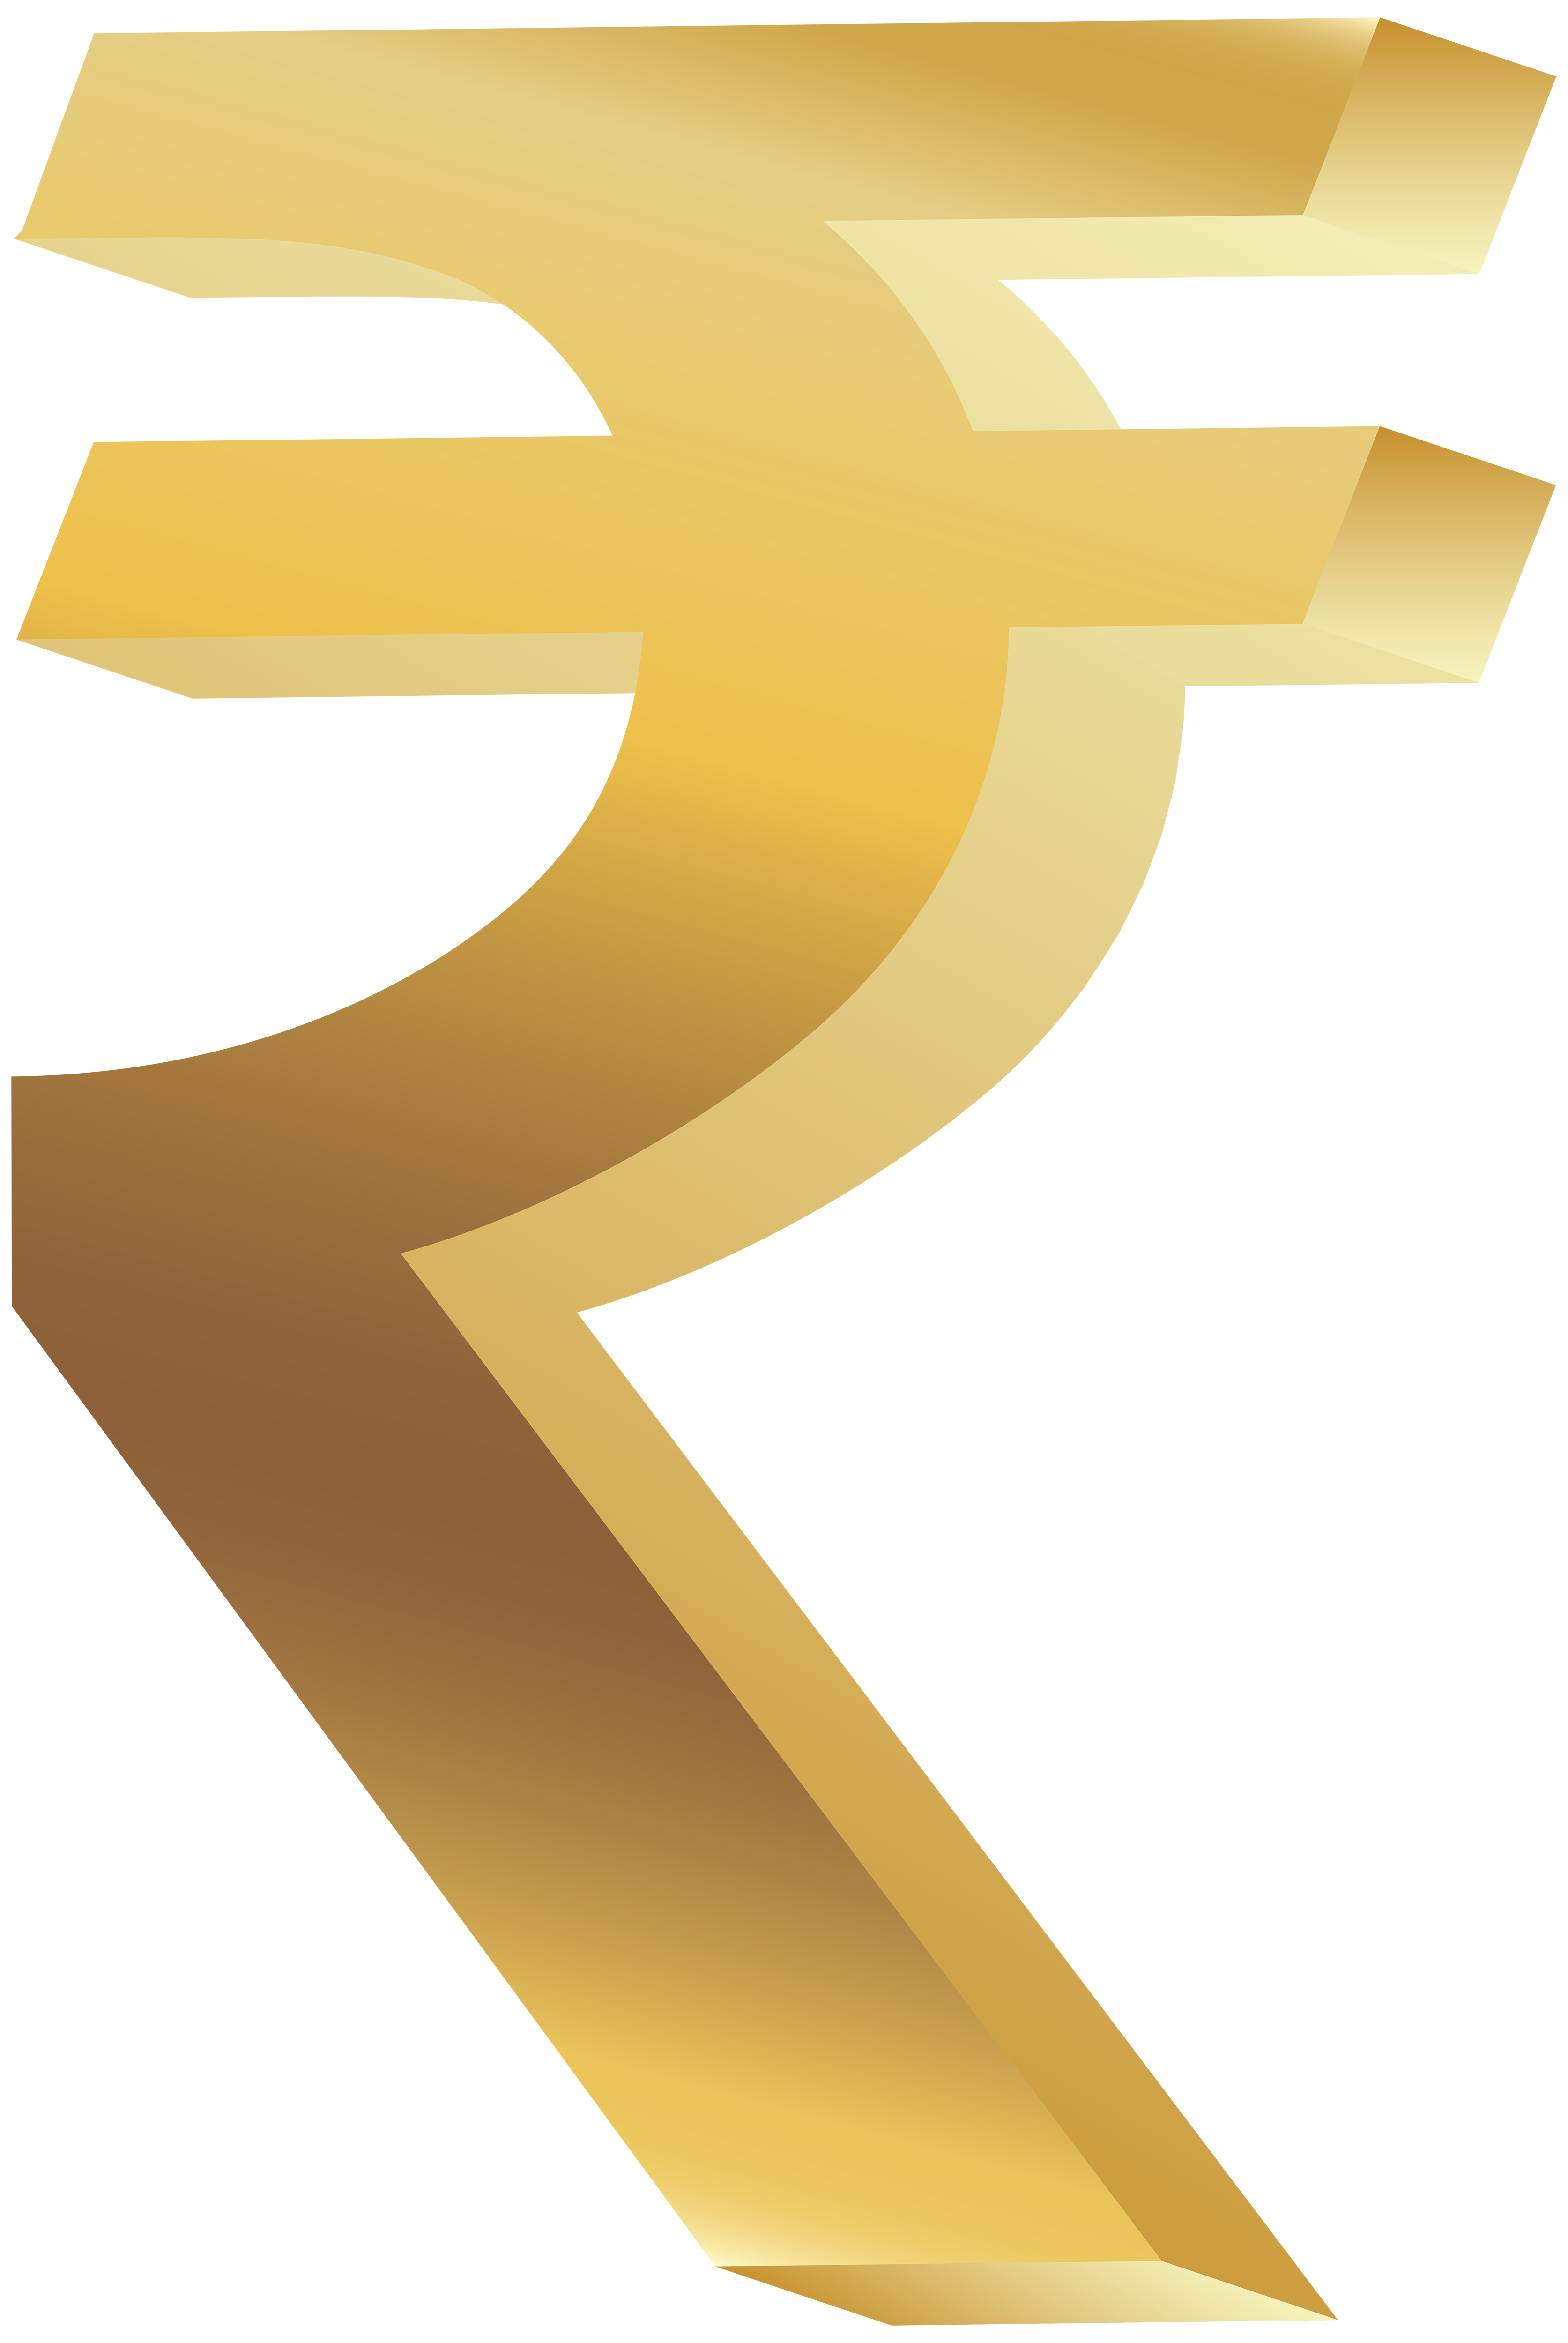 Person with money signs as eyes clipart graphic download Rupee Symbol PNG Clip Art - Best WEB Clipart graphic download